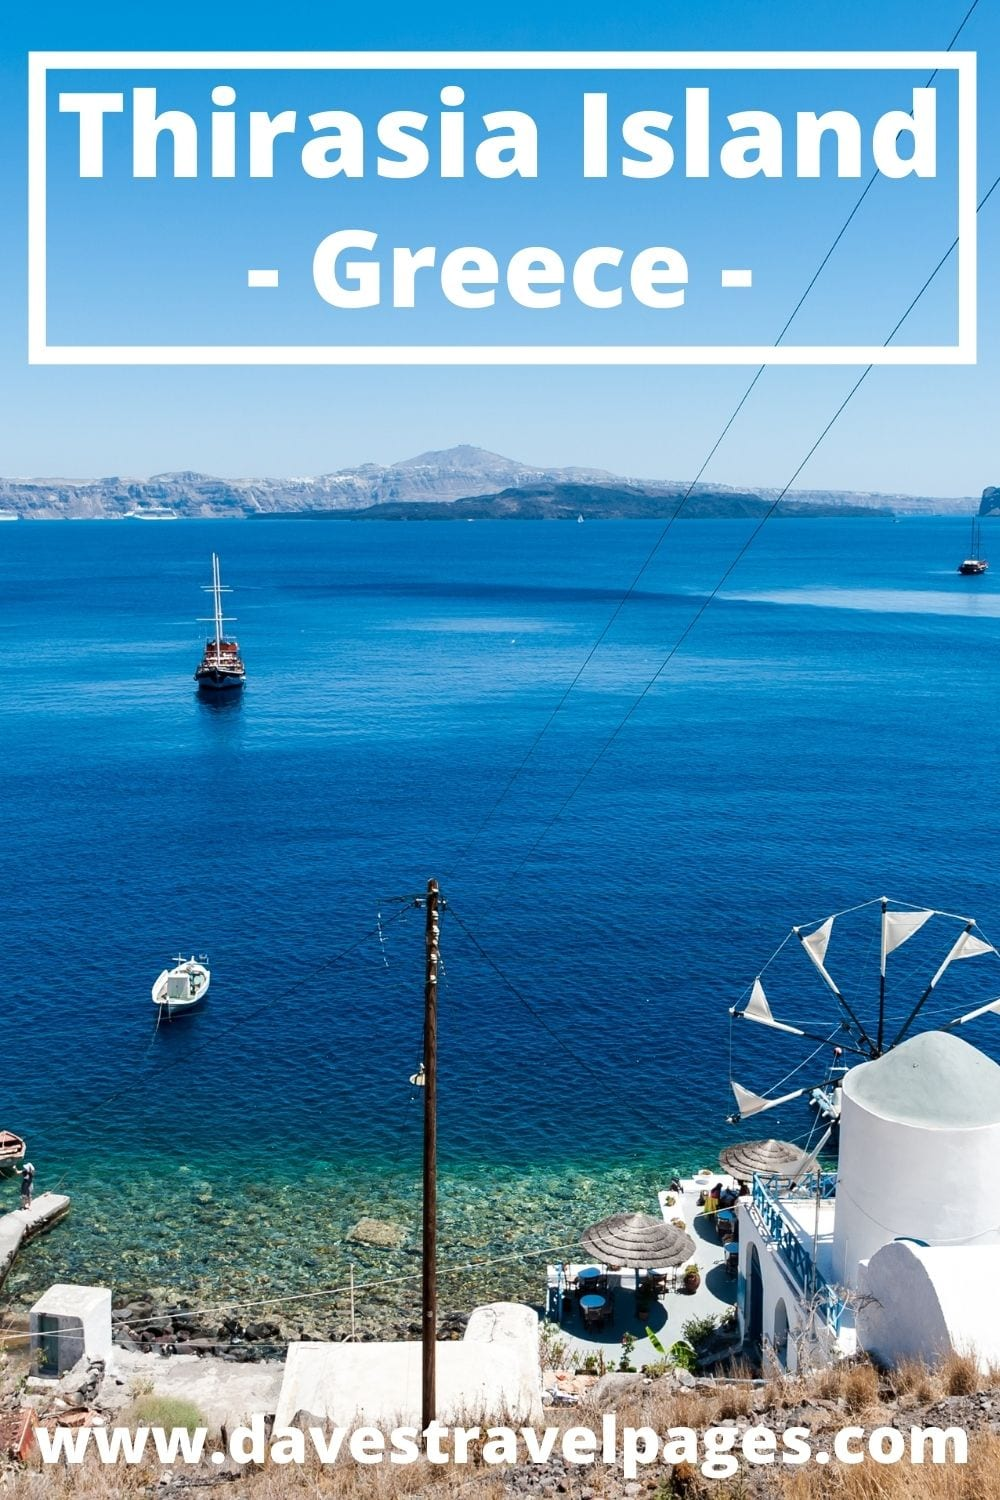 How to get to Thirasia island in Greece from Athens